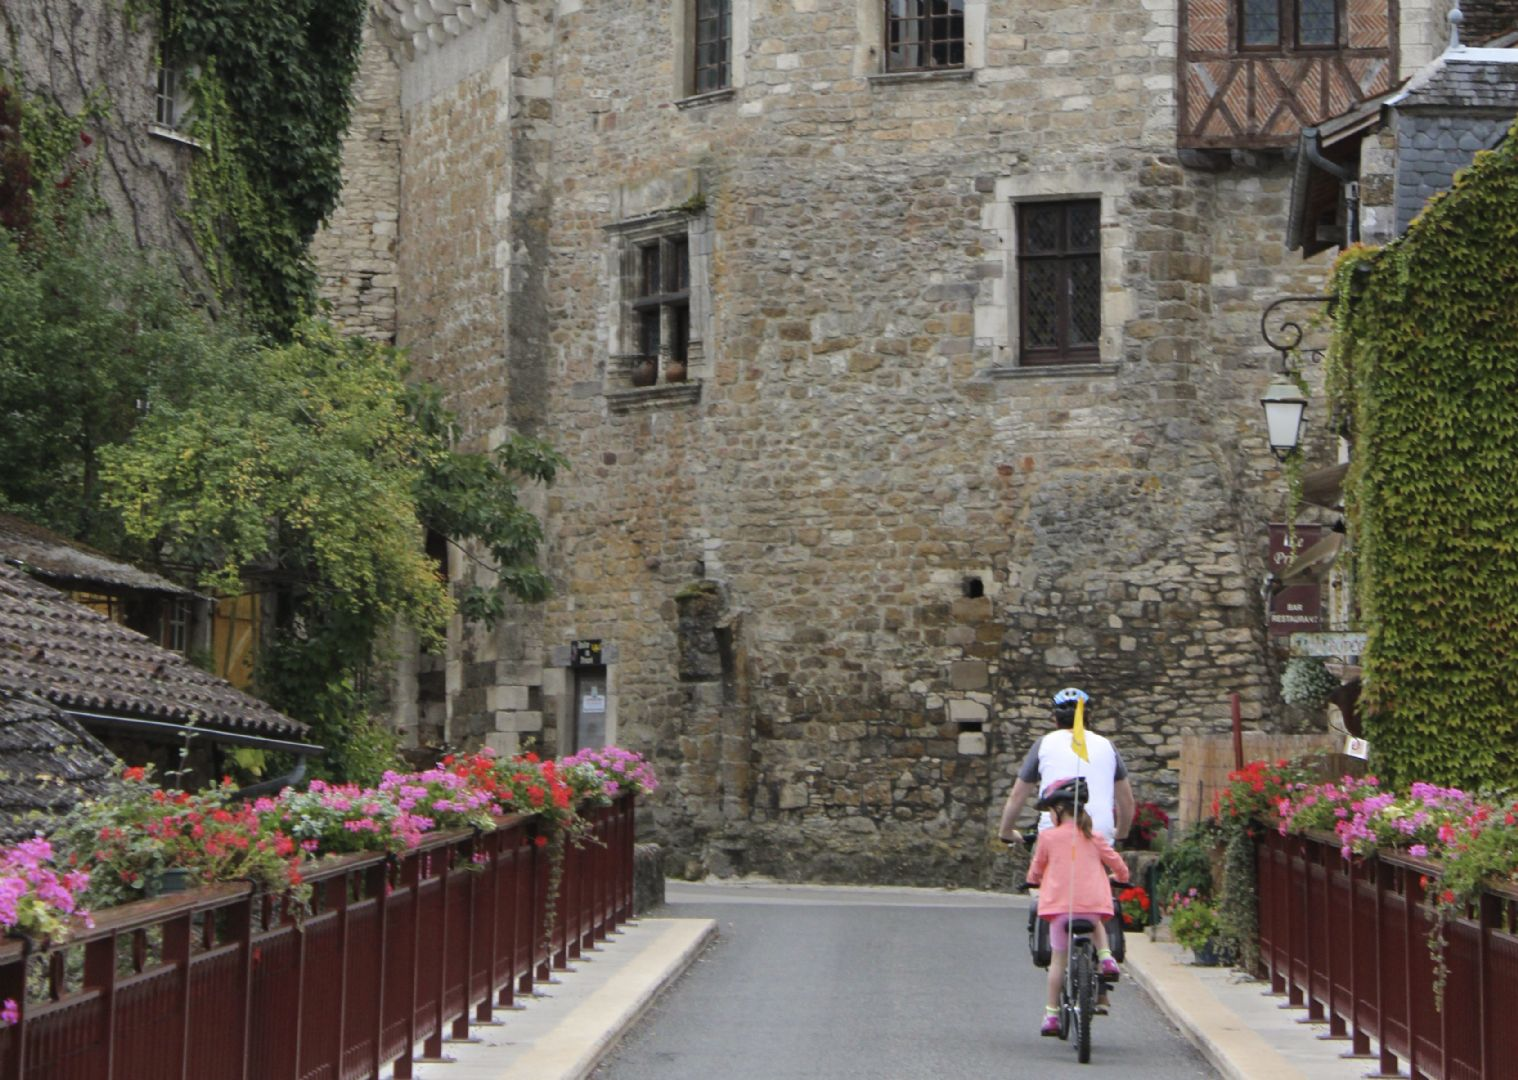 francefamilycycling7.jpg - France - Loire - Valley of Castles - Self-Guided Family Cycling Holiday - Family Cycling